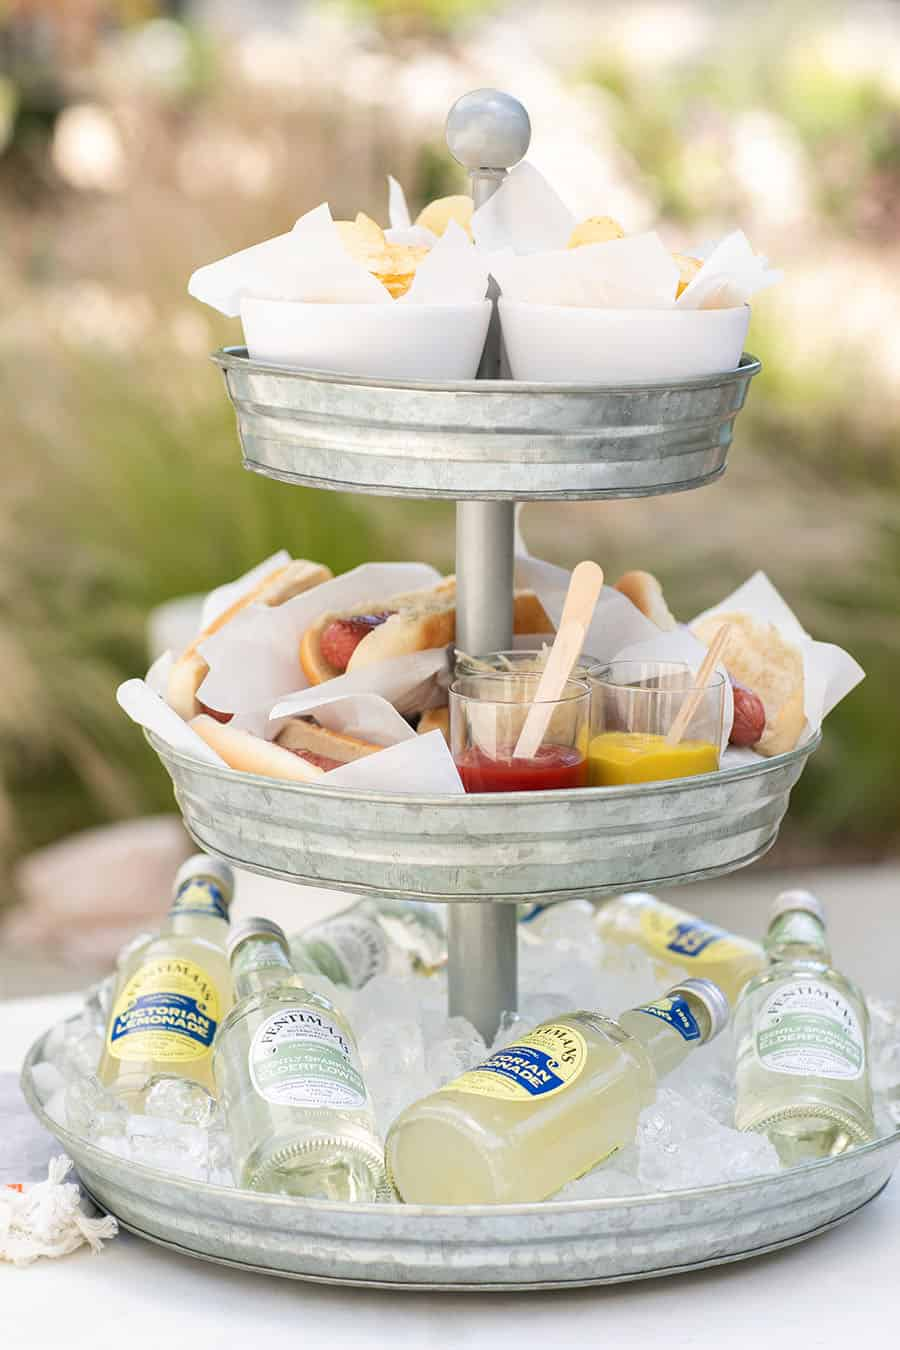 Tiered Galvanized Tray with potato chips, hot dogs and sodas on the bottom